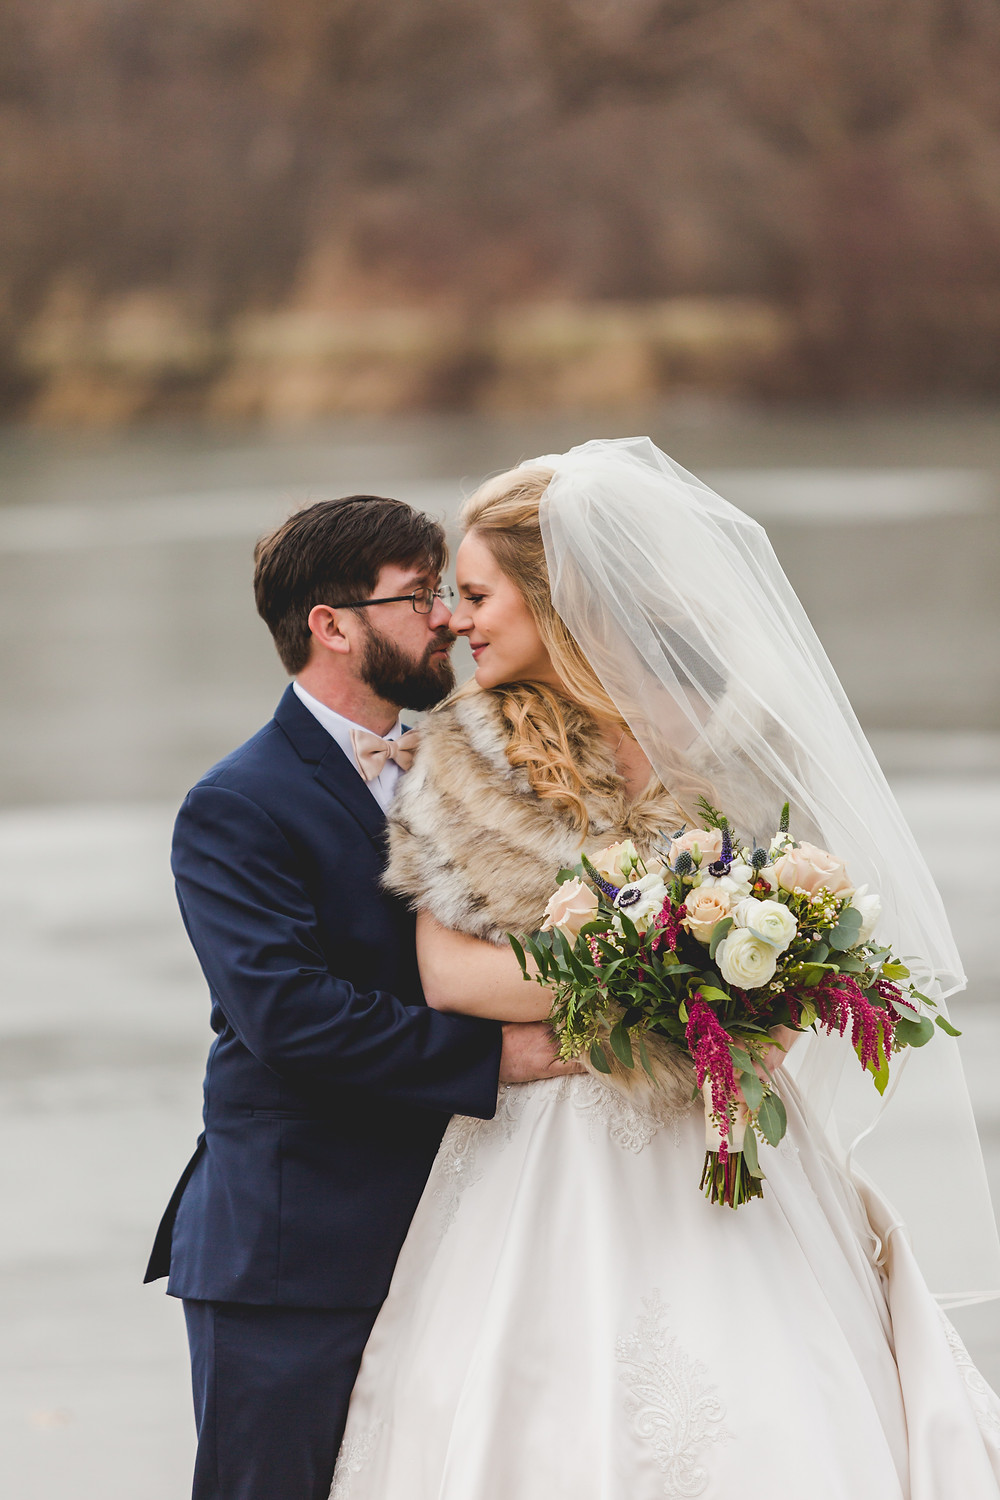 Composed and Exposed Photography, winter wedding, bride and groom, professional wedding photographer, wedding photographer located in South Elgin,